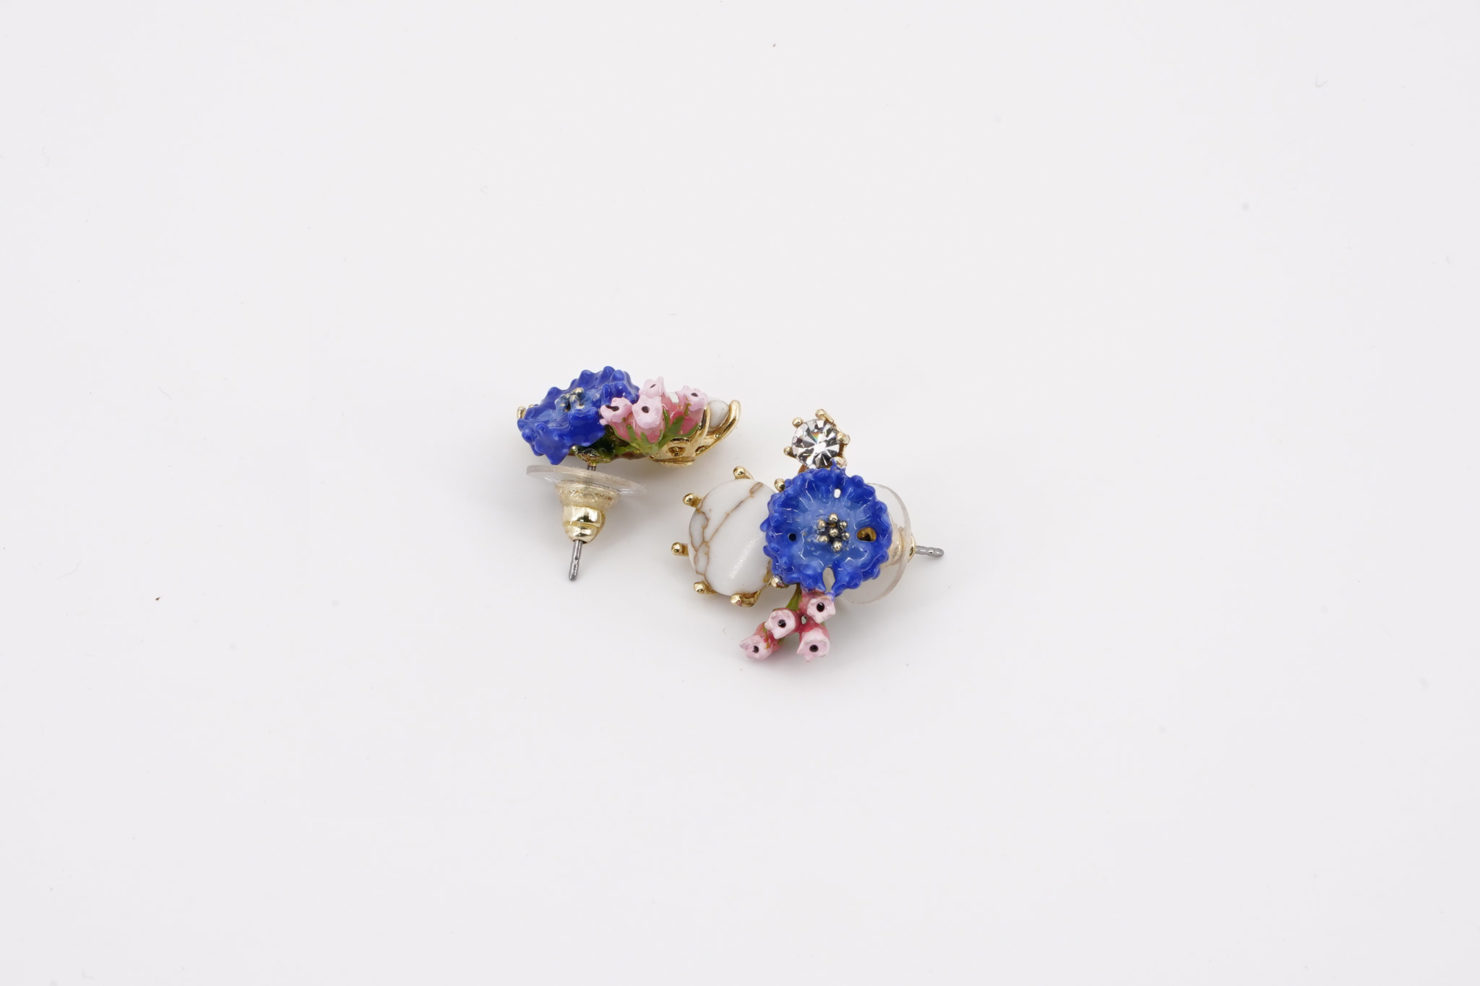 CORNFLOWER ON STONE EARRINGS DANS LA CLAIRIERE COLLECTION LES NEREIDES